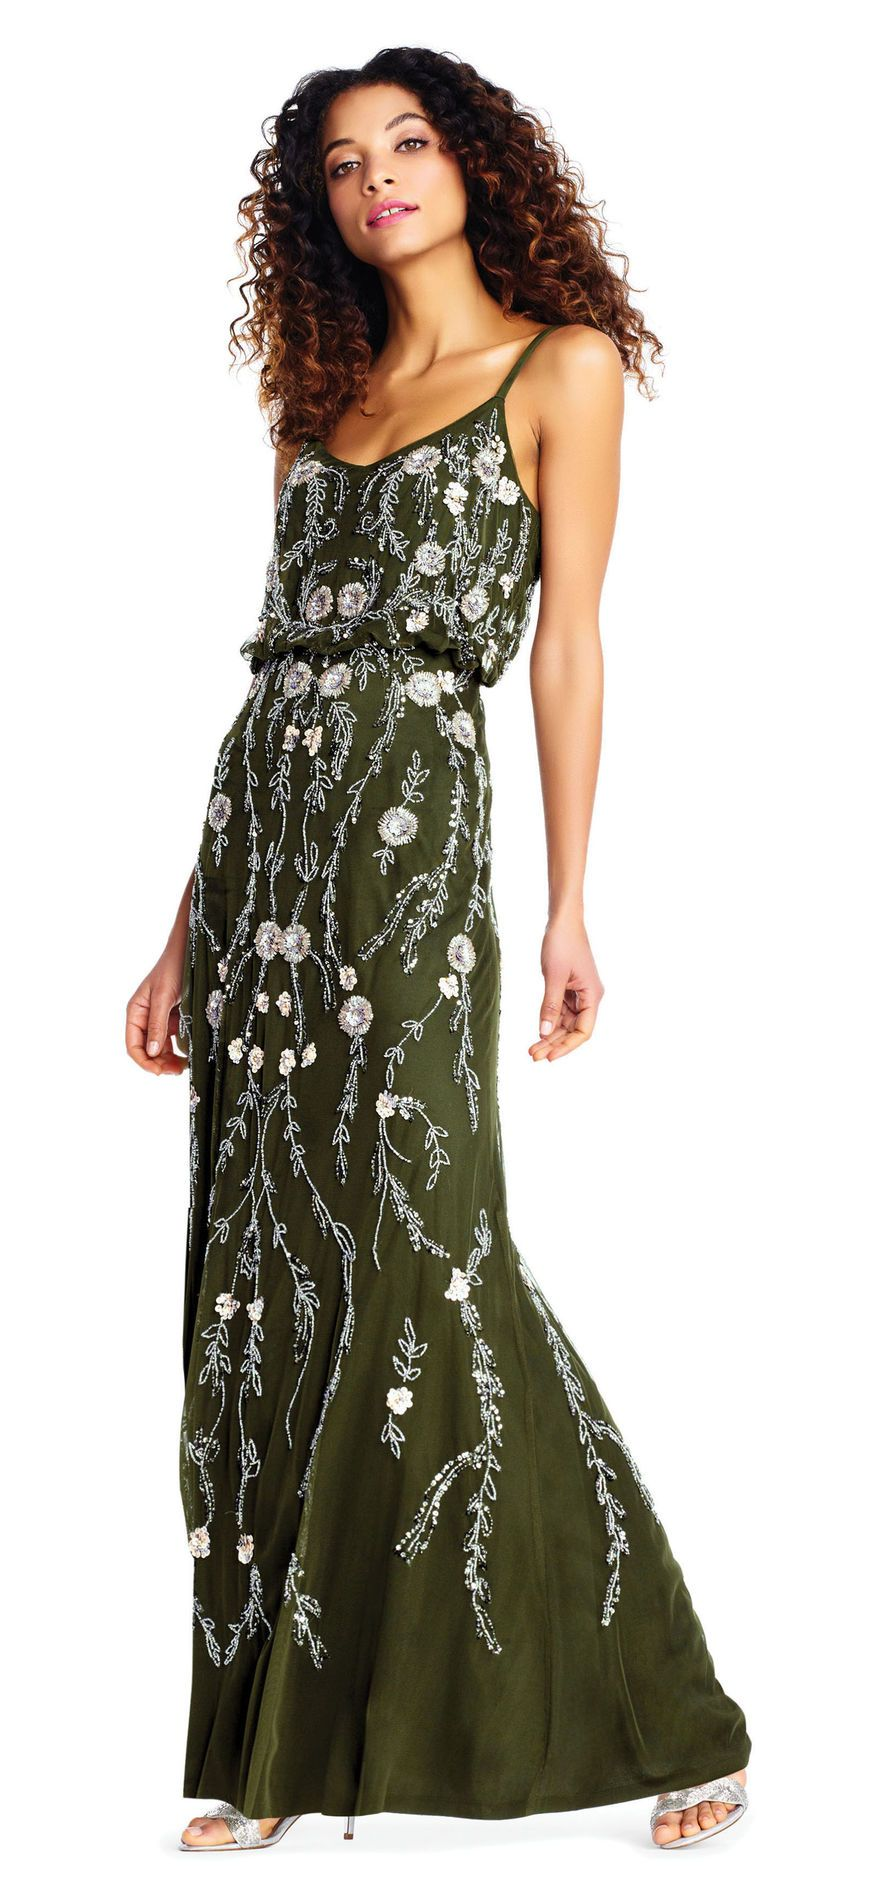 Floral Beaded Blouson Dress Bridesmaids 2 Olive Bridesmaid